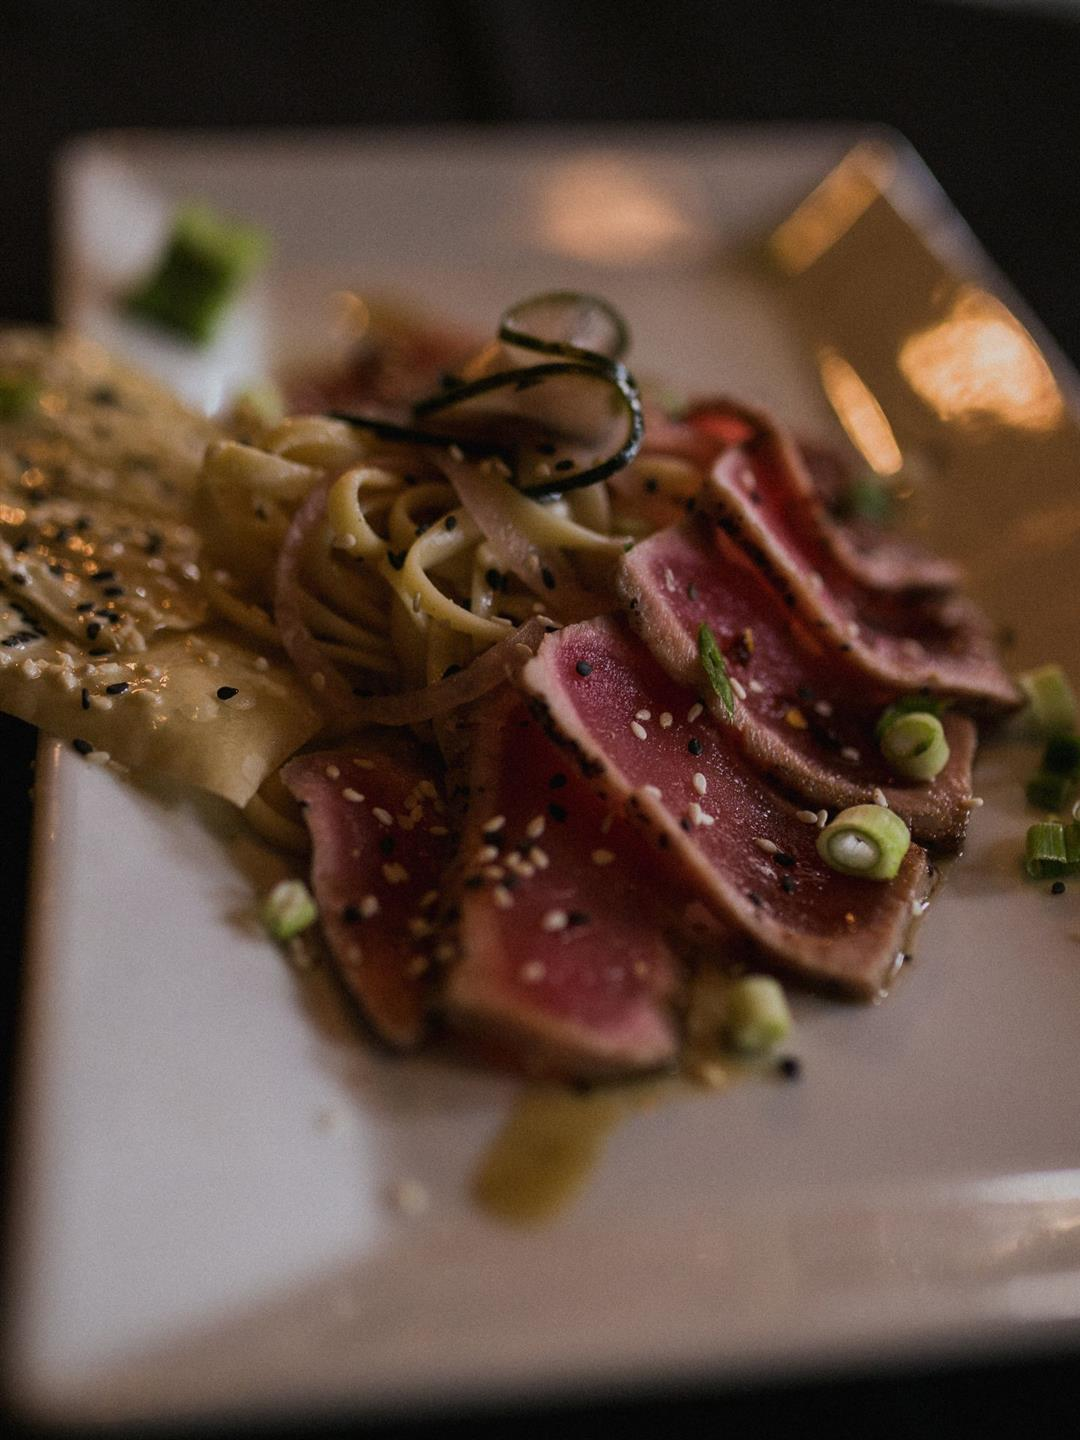 Seared tuna with scallions and sesame seeds on a plate with sesame tortilla chips